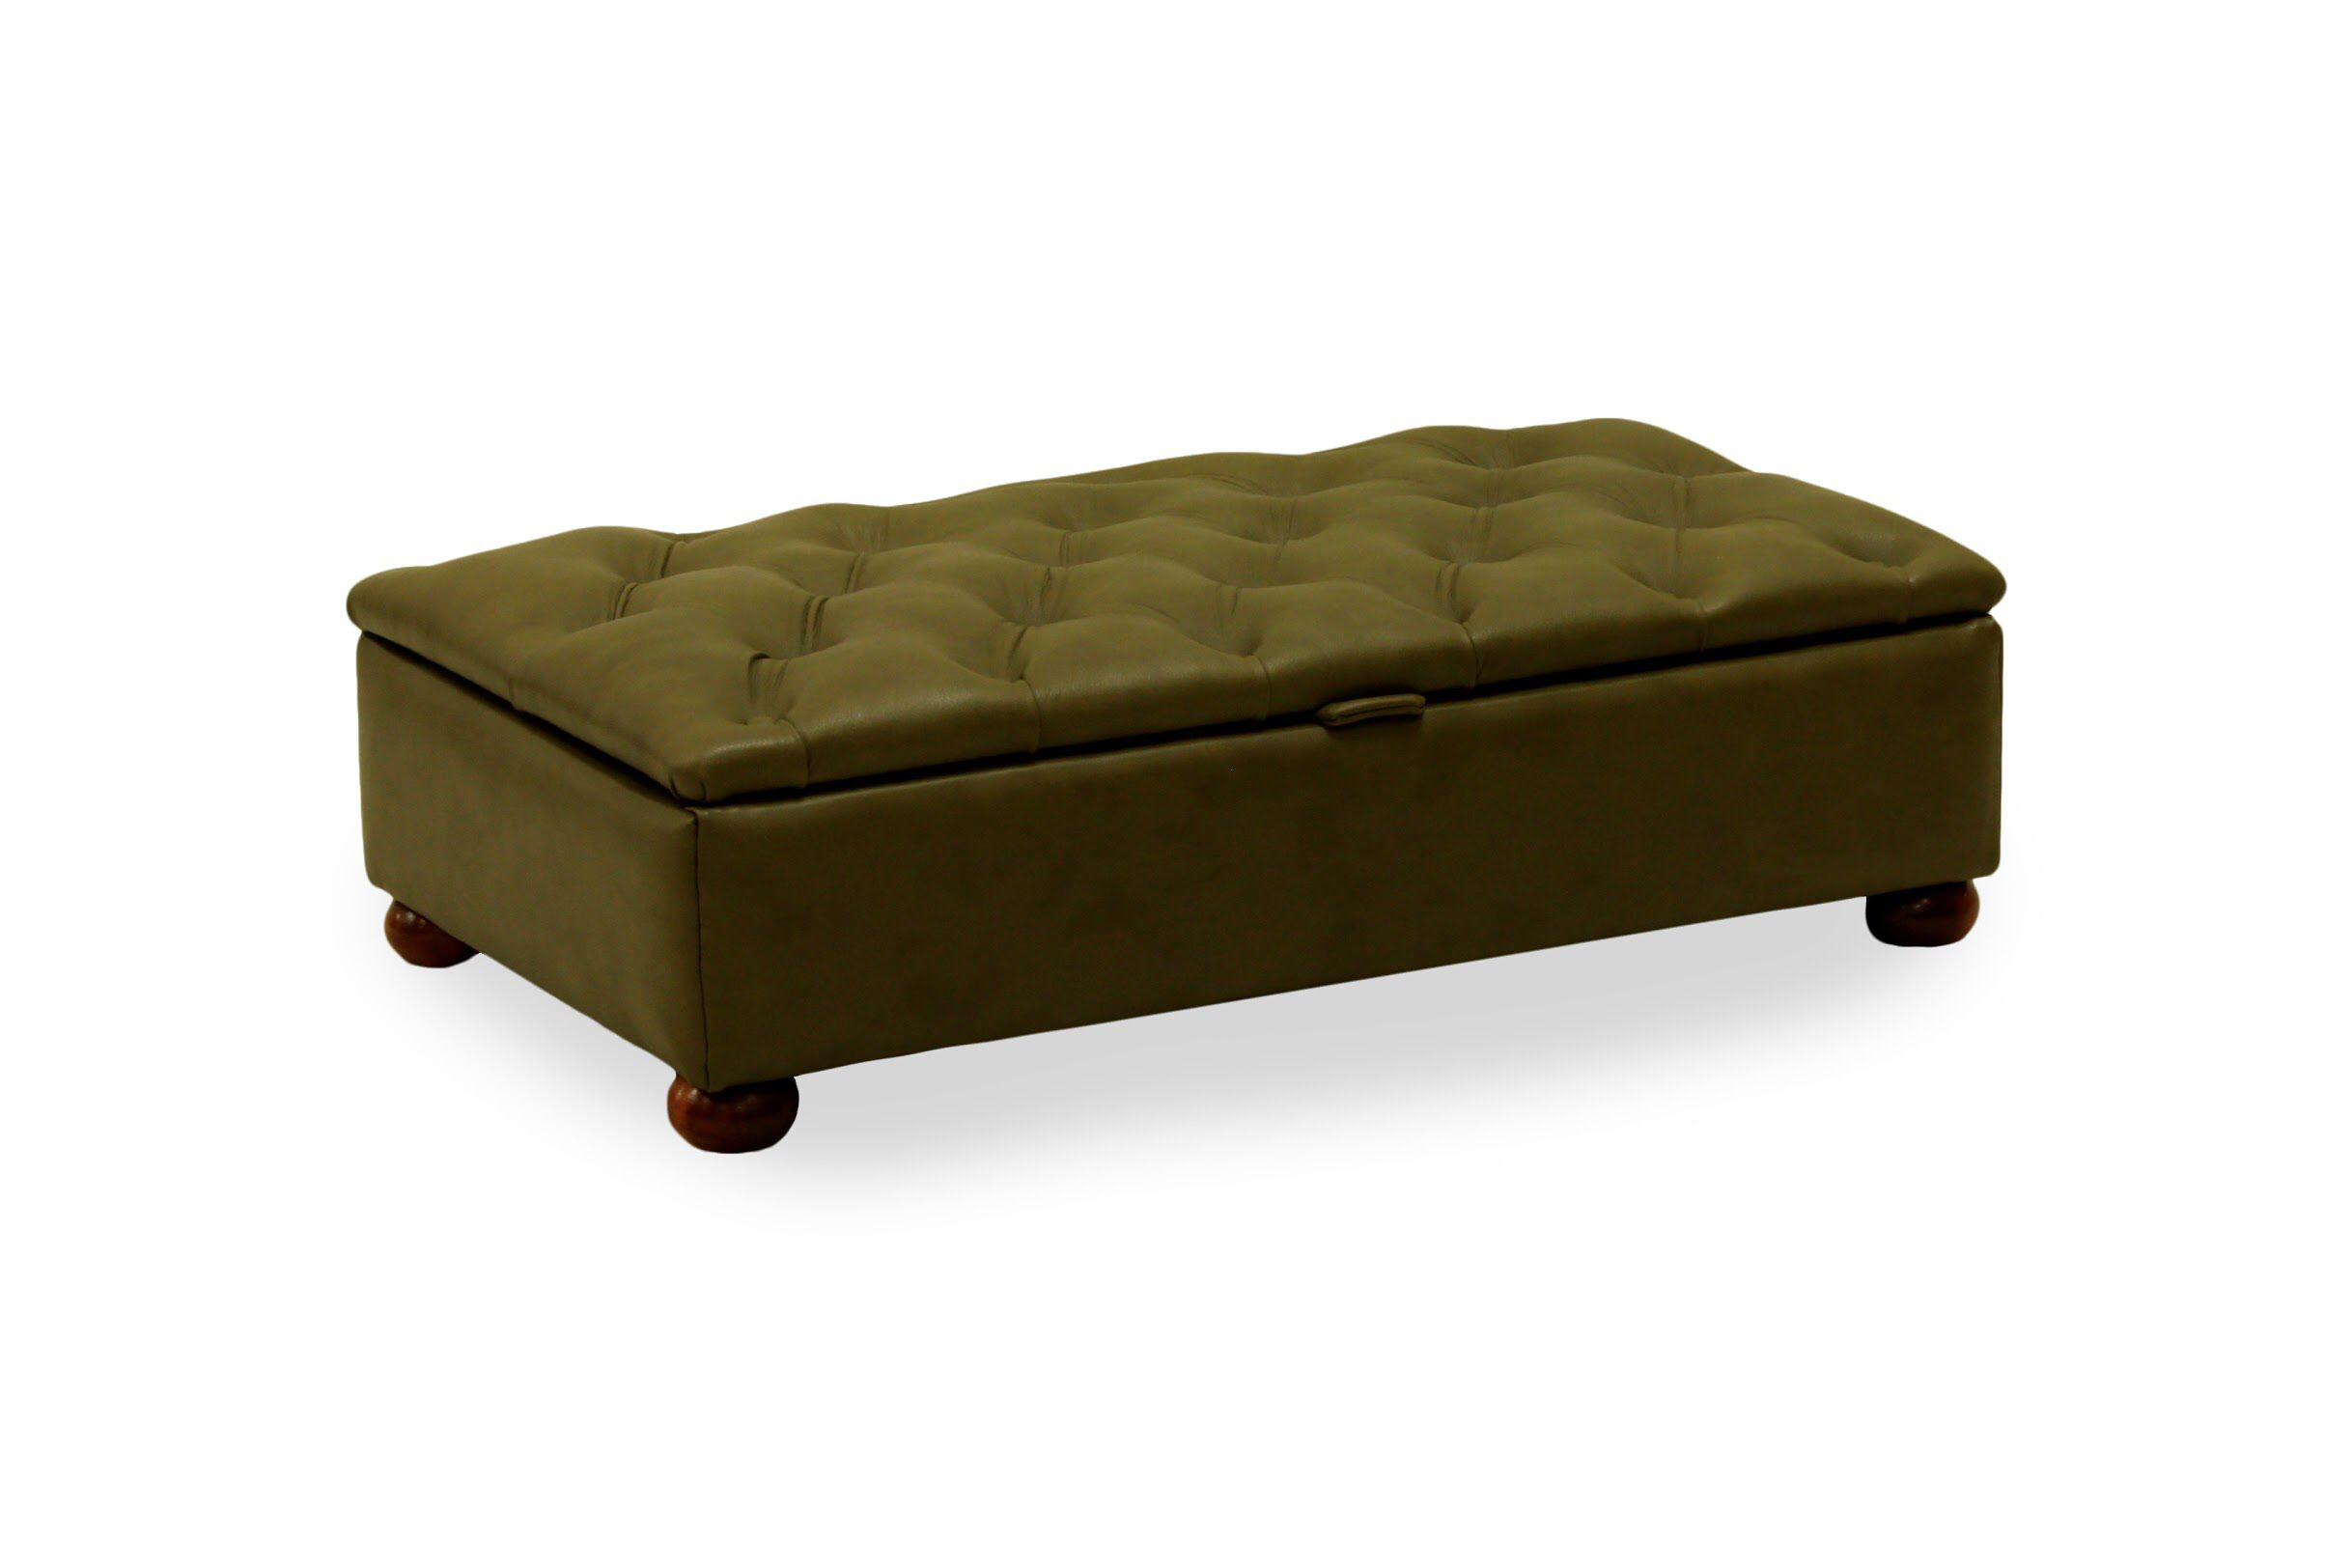 Phenomenal Buttoned Ottoman Handmade In Yarwoodleather Mustang Dark Ncnpc Chair Design For Home Ncnpcorg